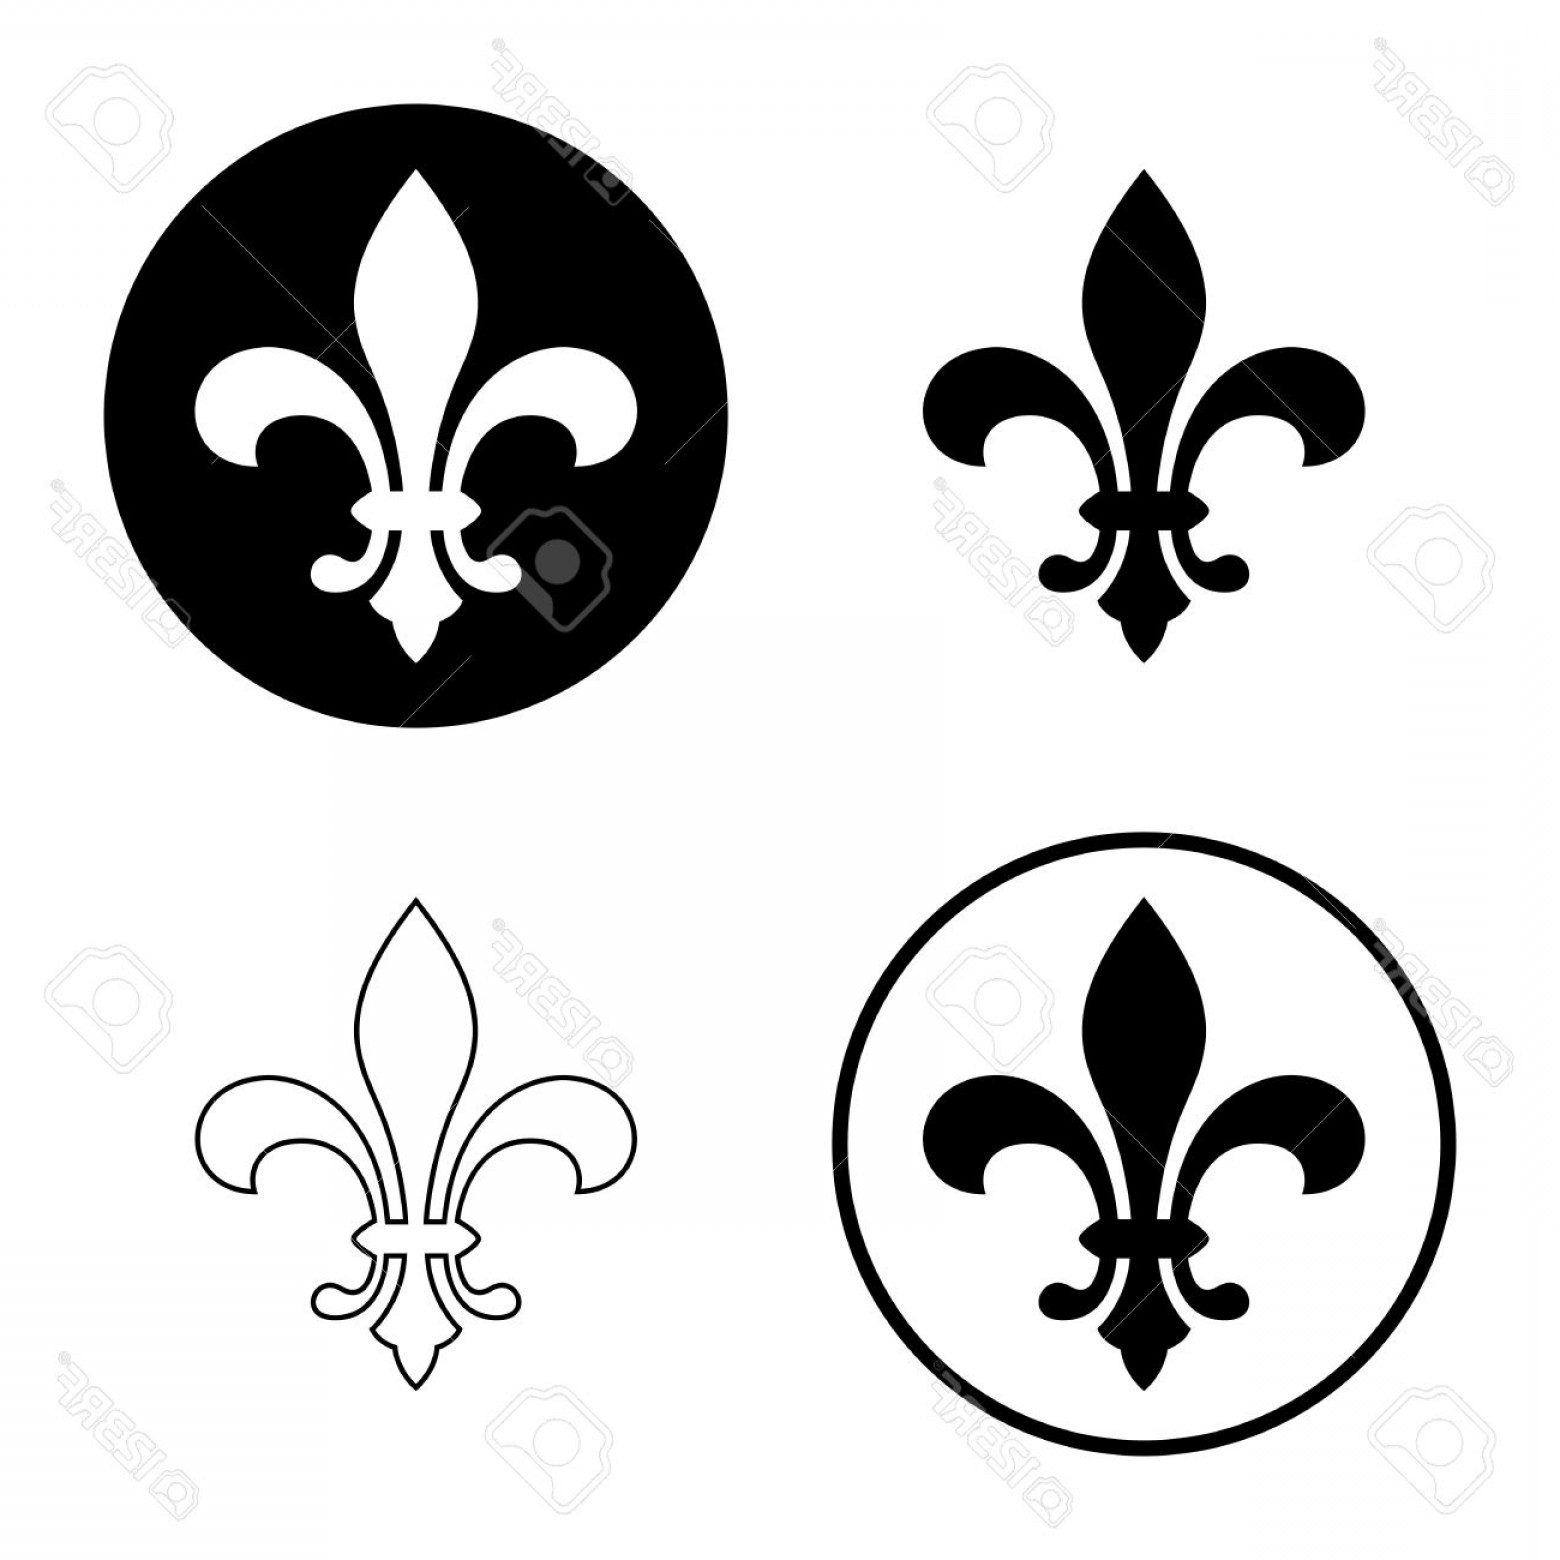 Photostock vector fleur de lis or lily flower icon set royal french icon of flower vectors photostock vector fleur de lis or lily flower icon set royal izmirmasajfo